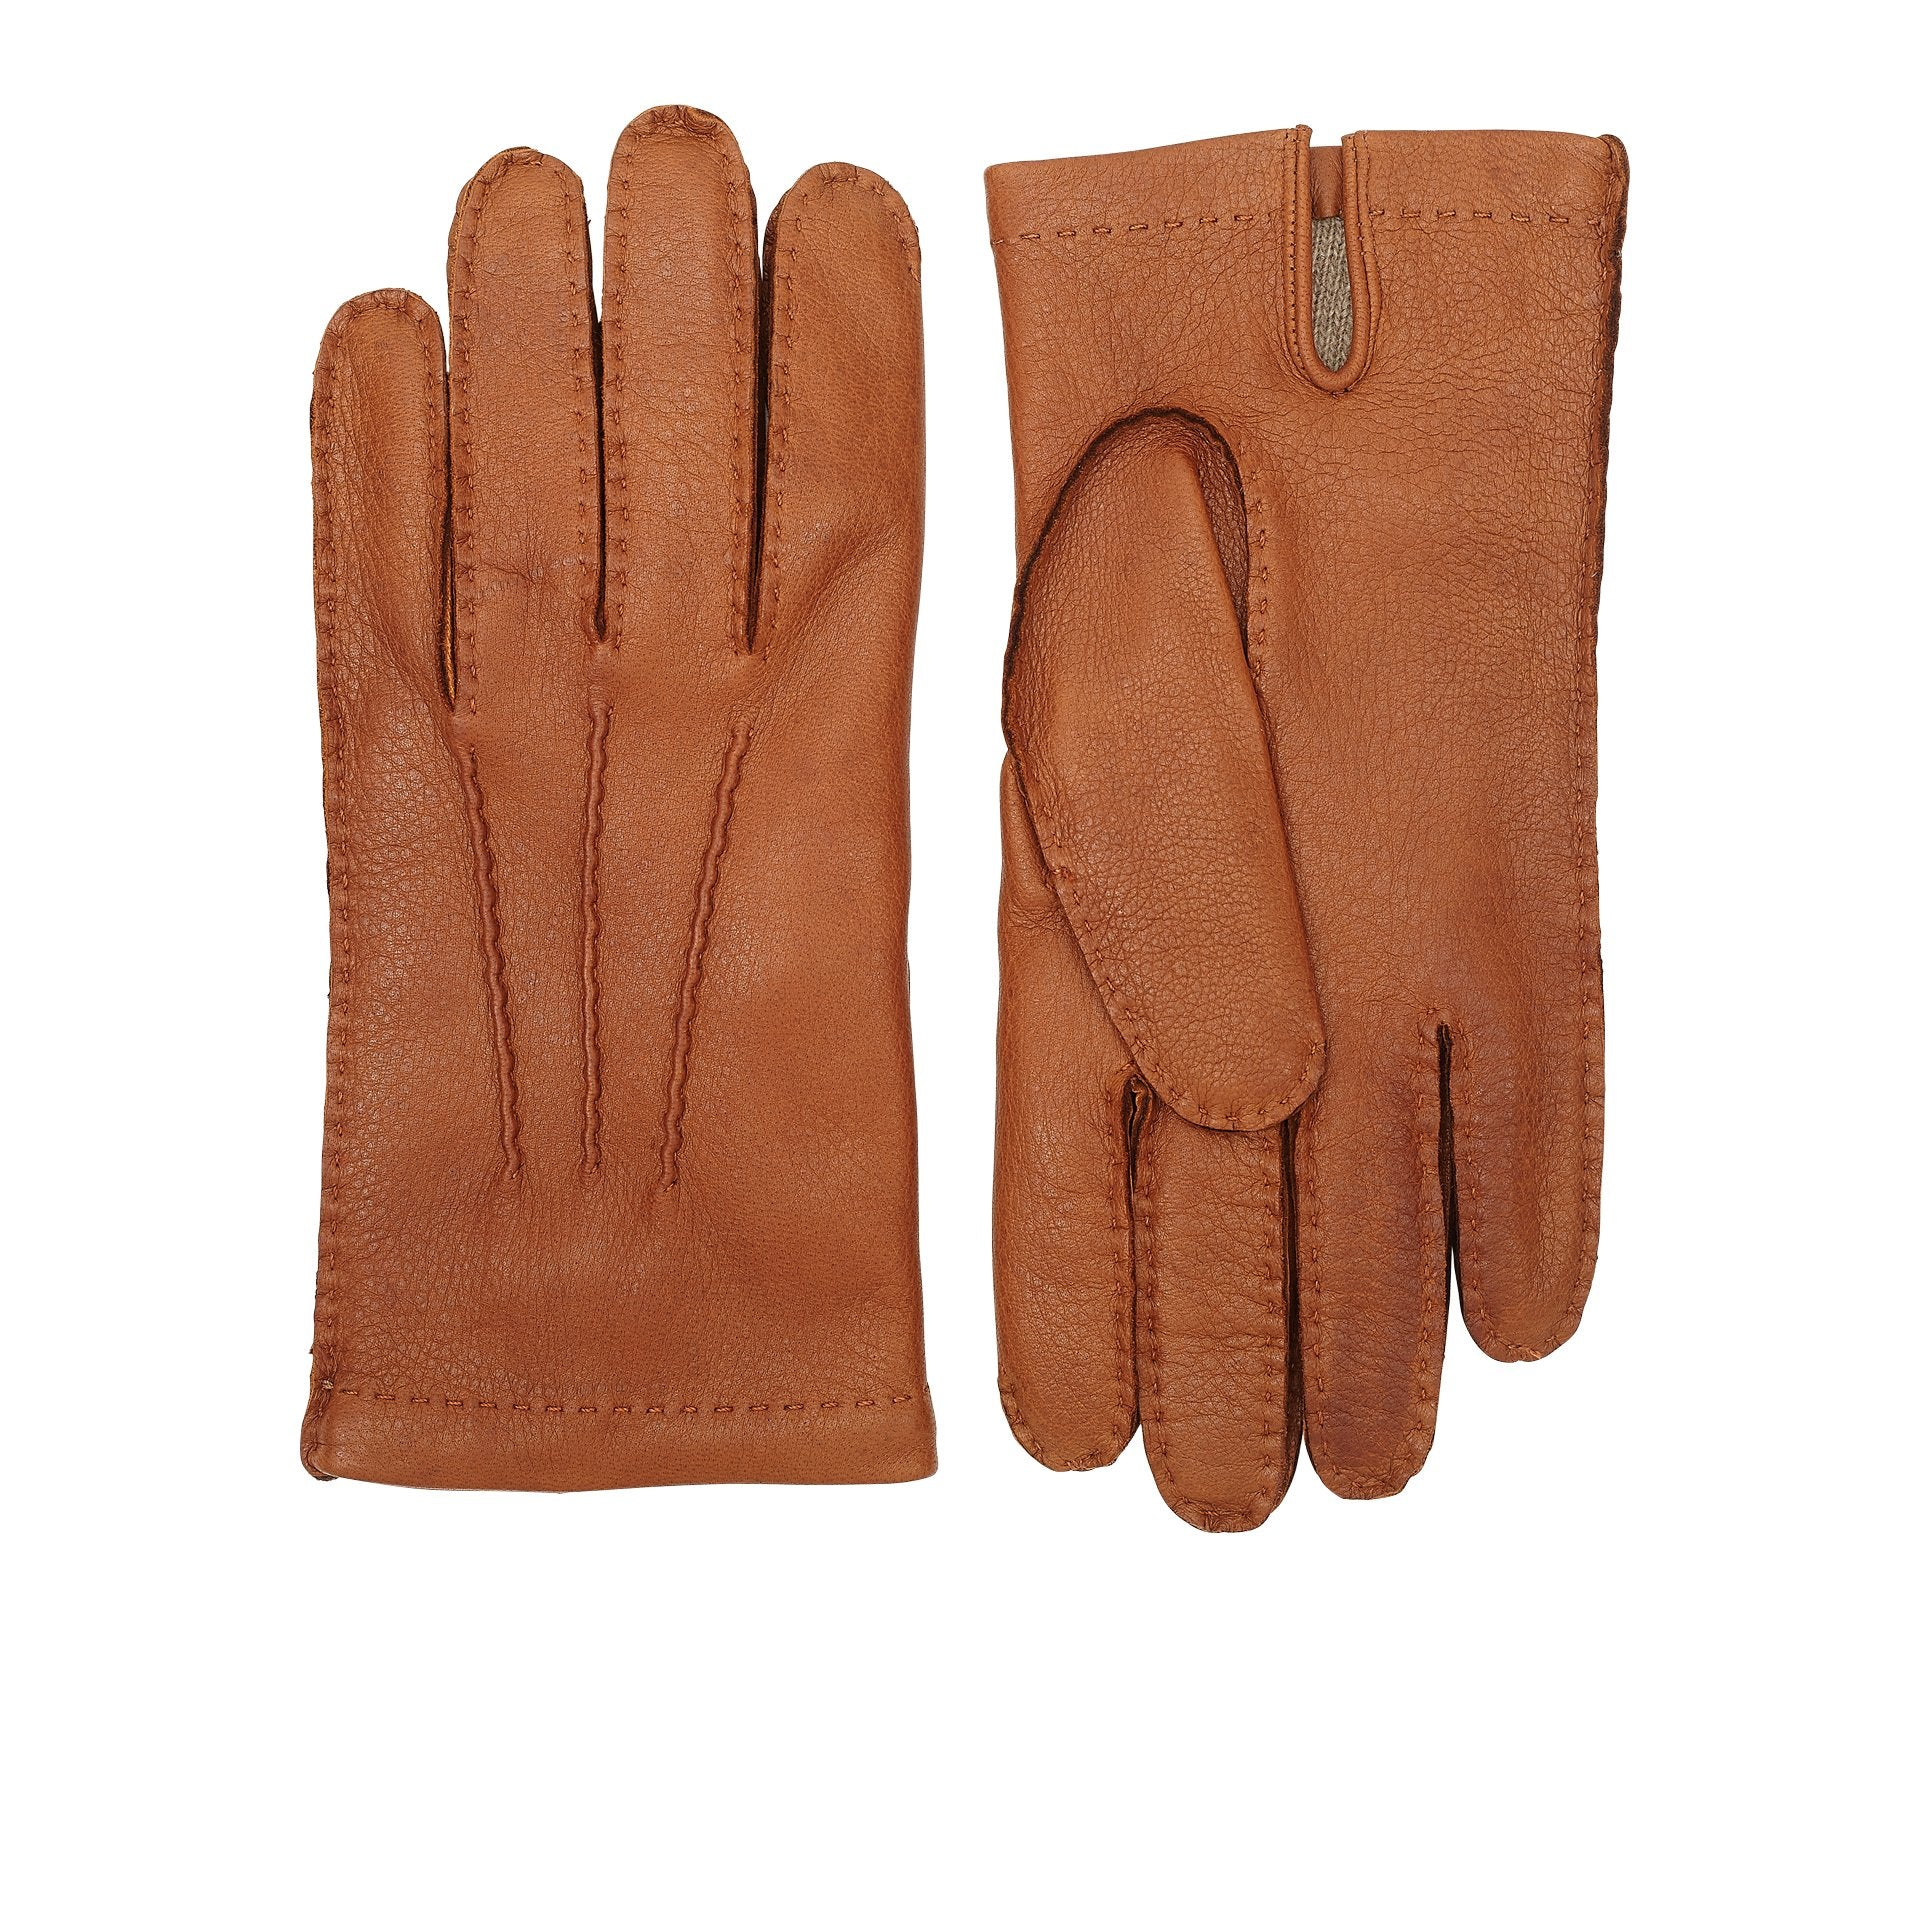 Deerskin gloves - Hat Accessories - Lock & Co. Hatters London UK